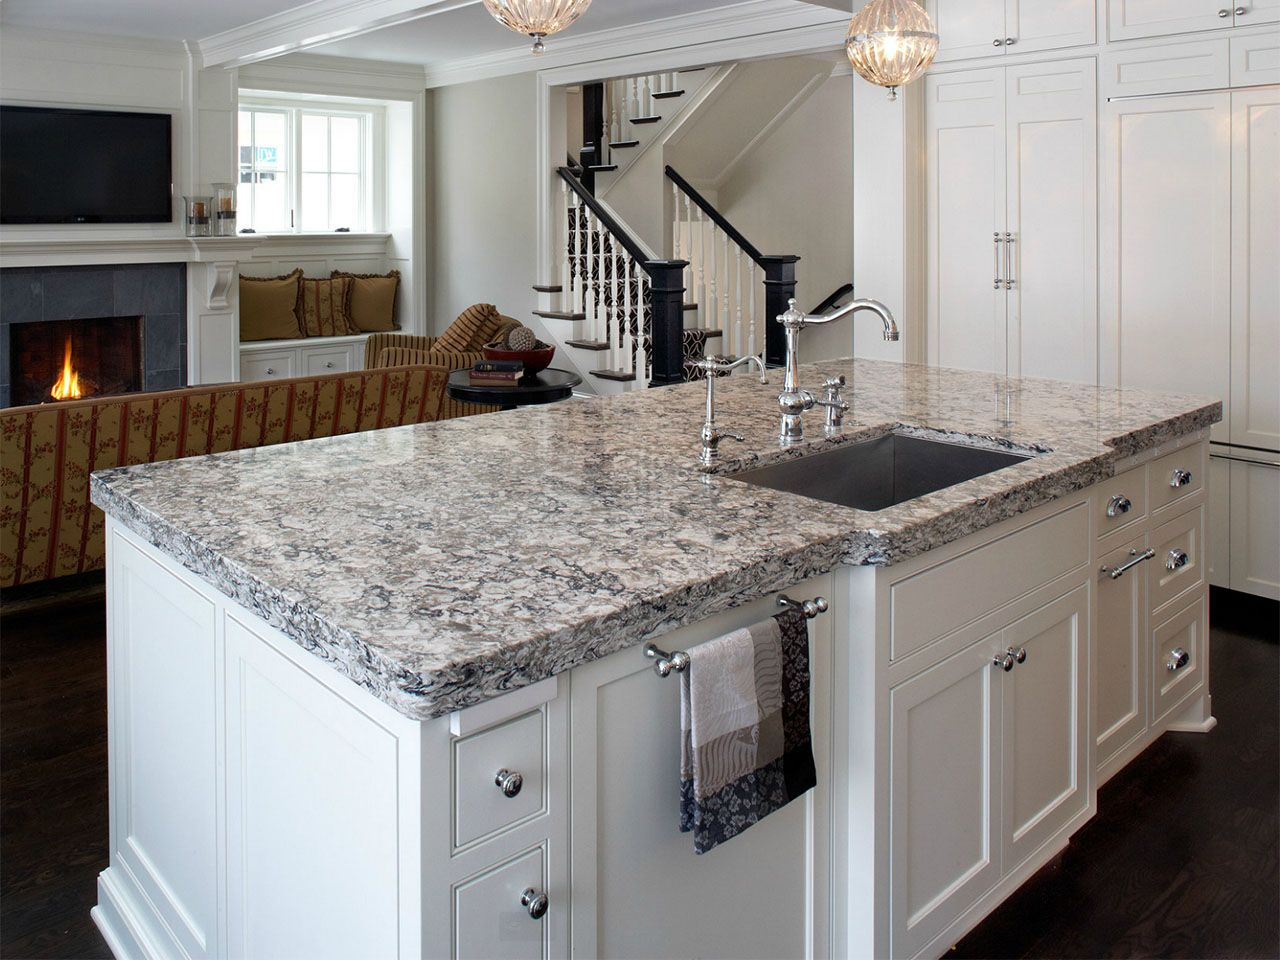 Inspiration Gallery Cambria Quartz Stone Surfaces Color Bellingham Quartz Countertops